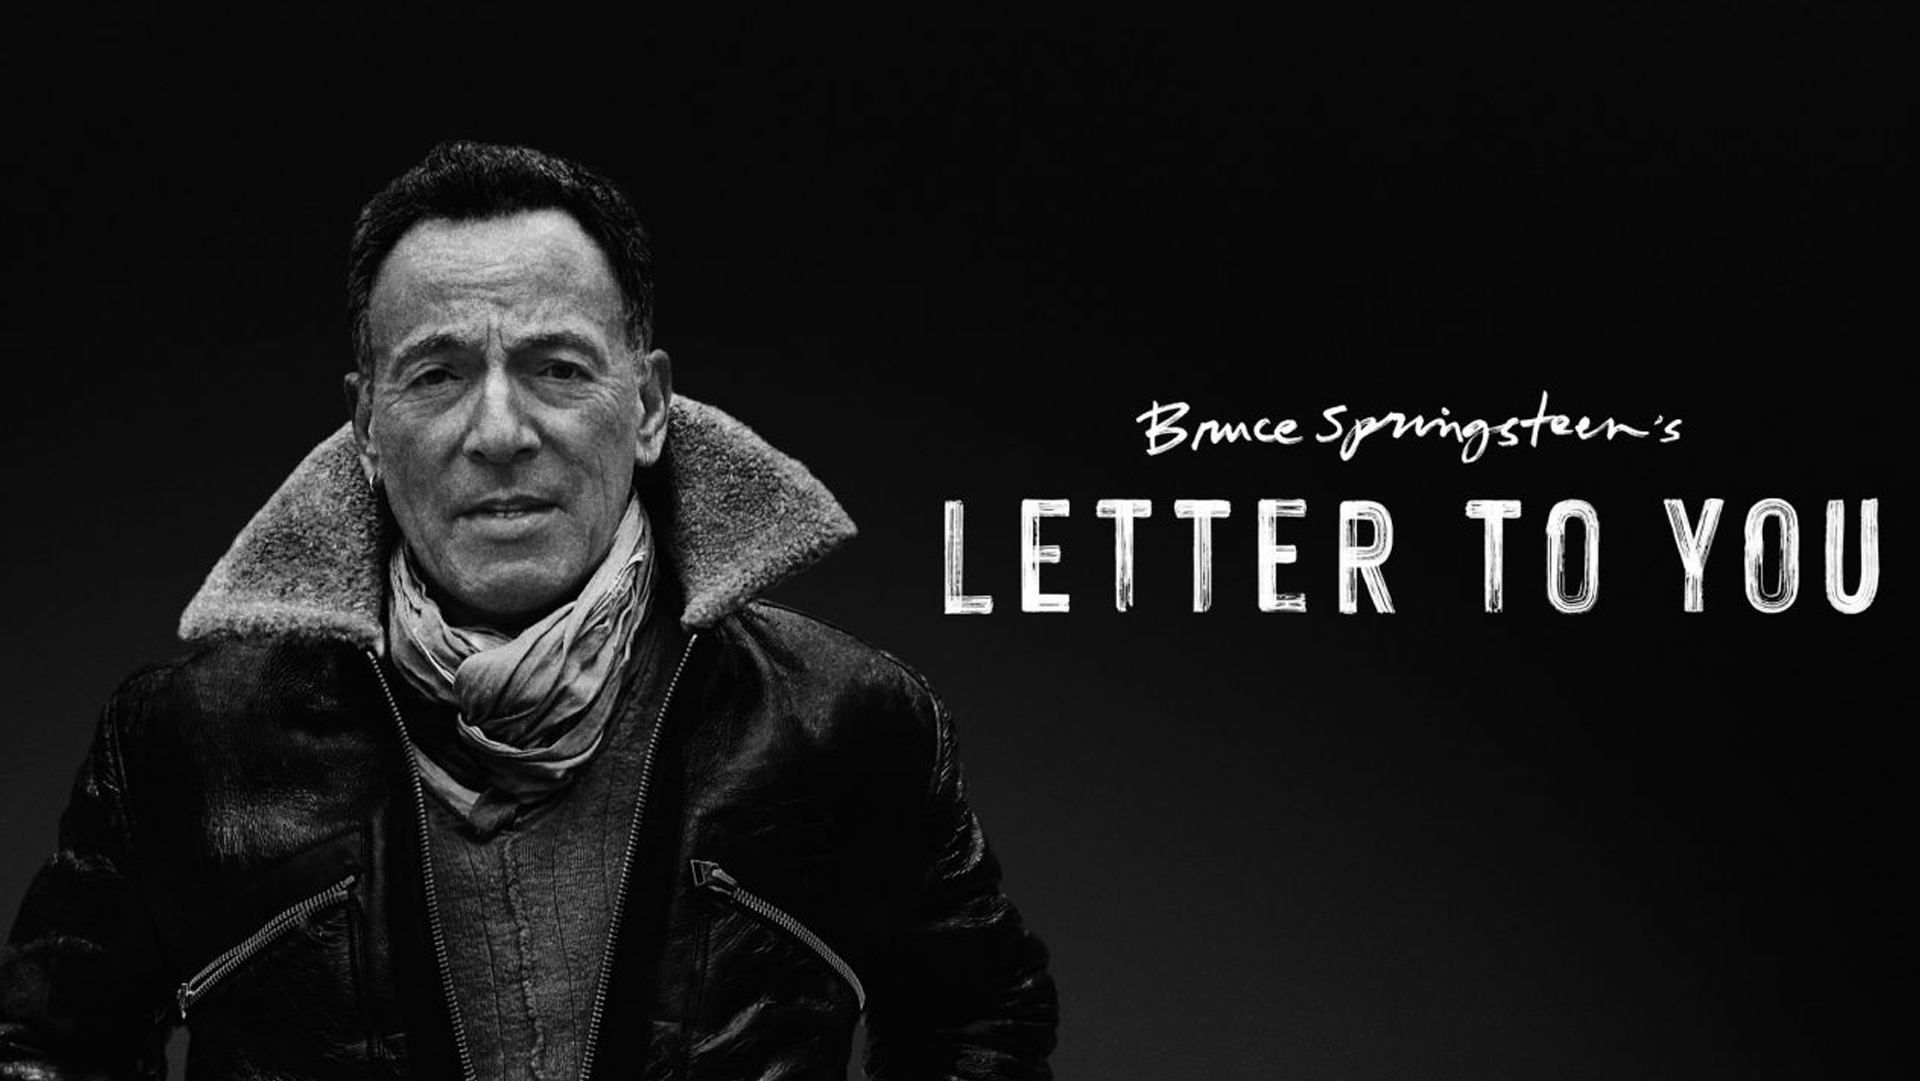 Letter to you - Bruce Springsteen